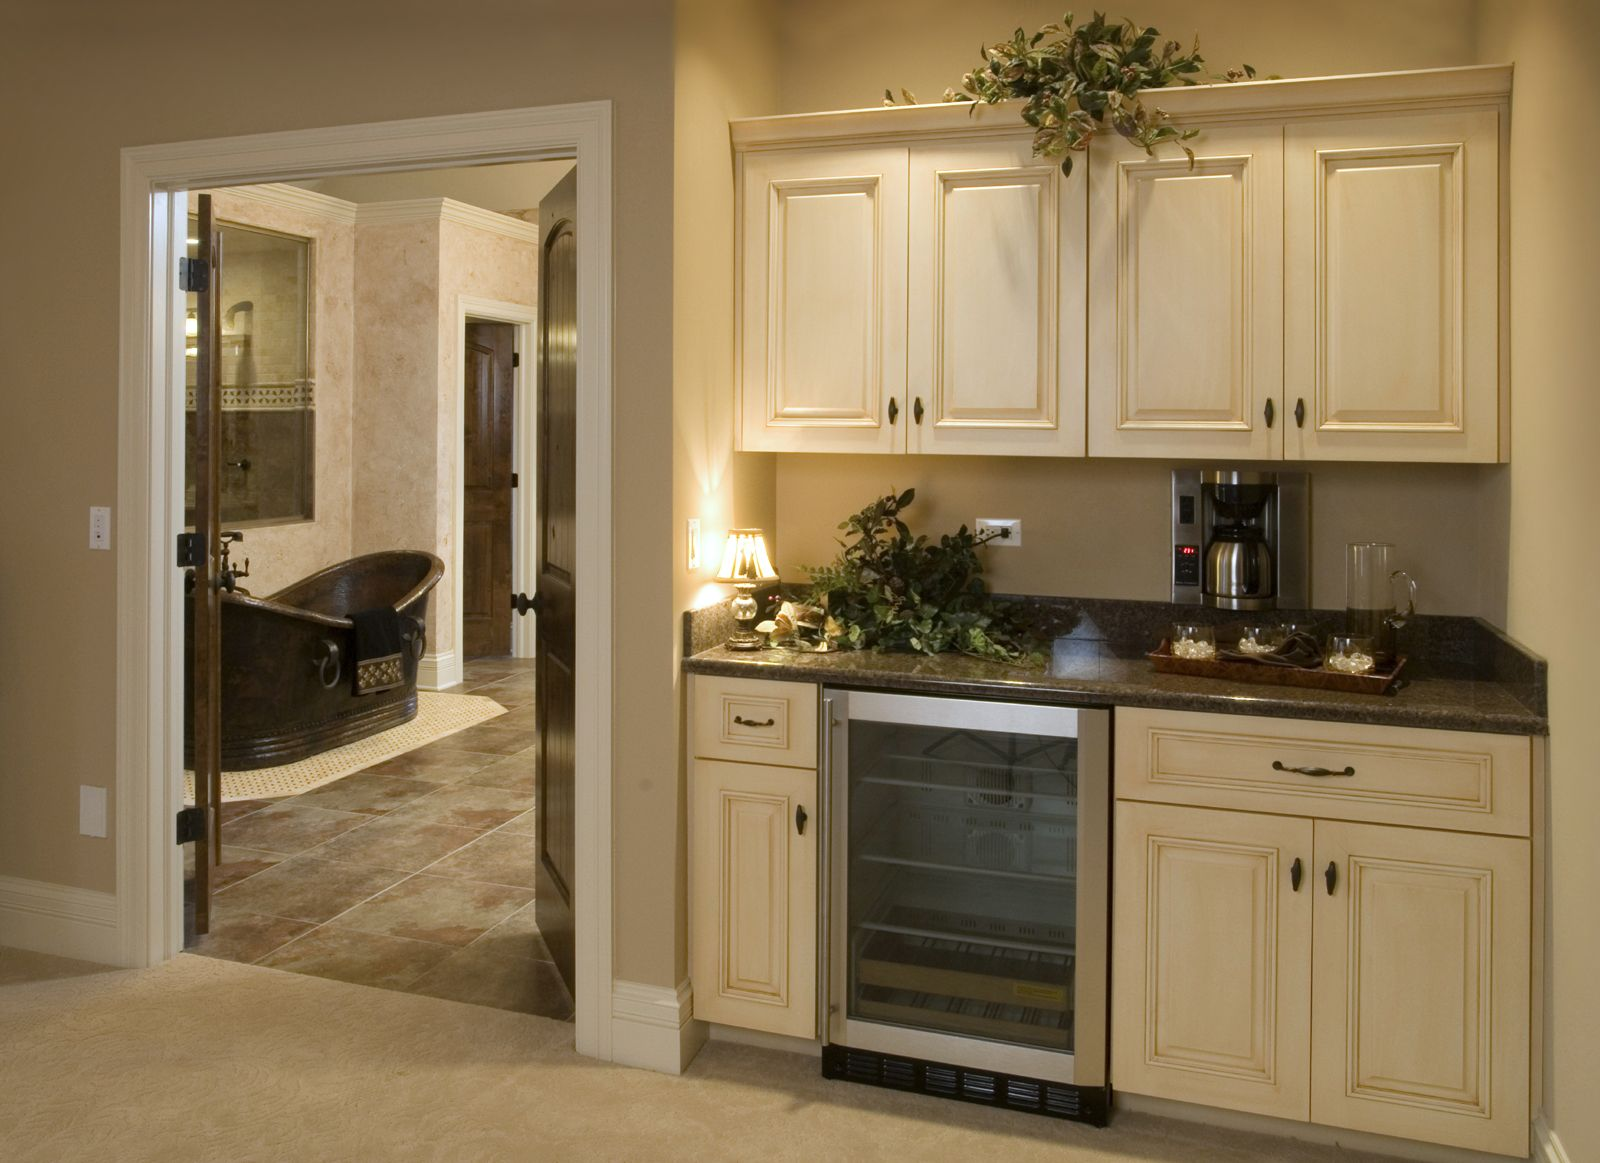 Morning kitchen in the Master | Built in coffee maker ...